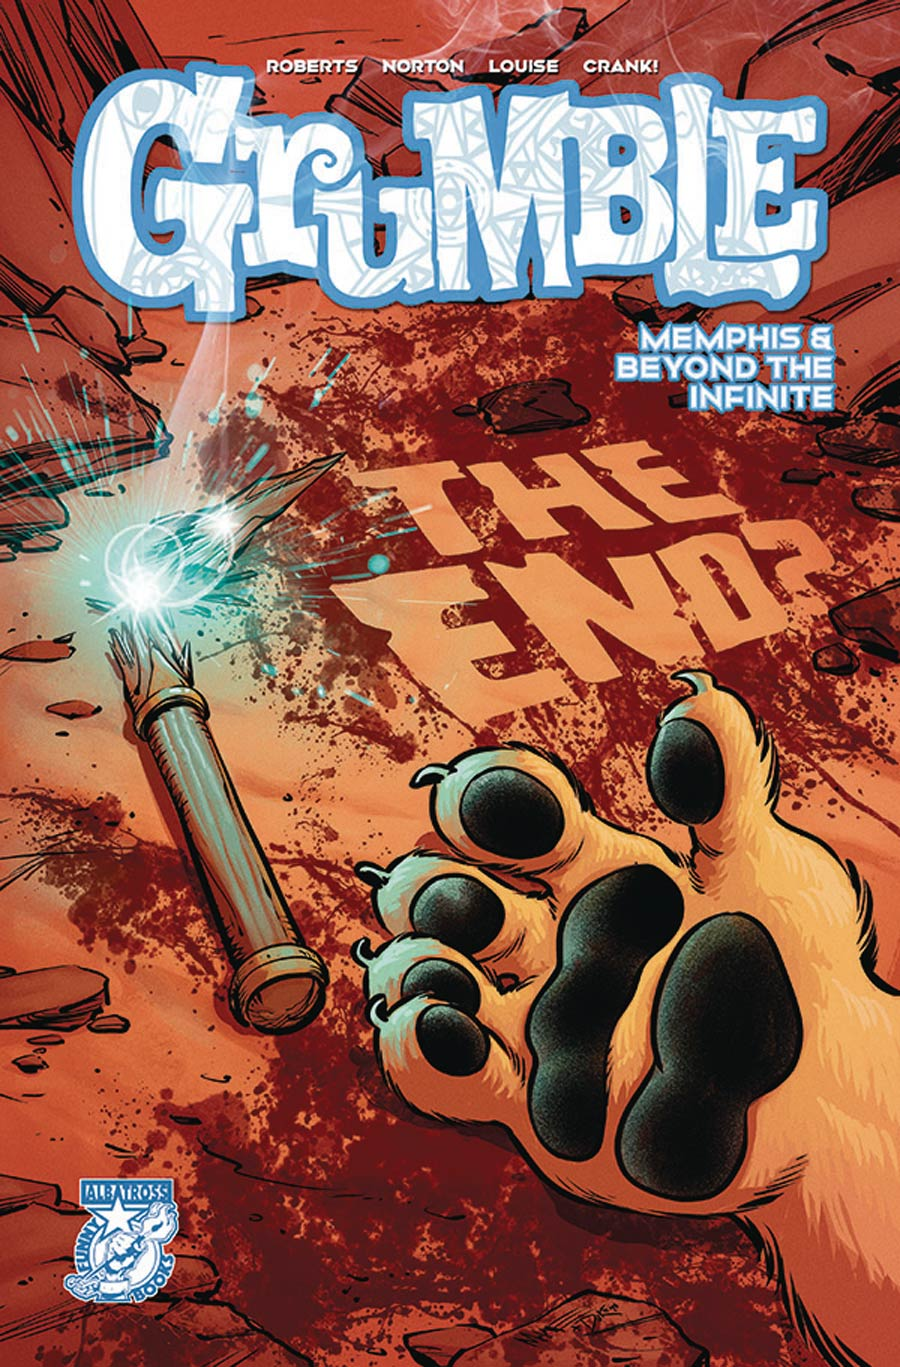 Grumble Memphis And Beyond The Infinite #5